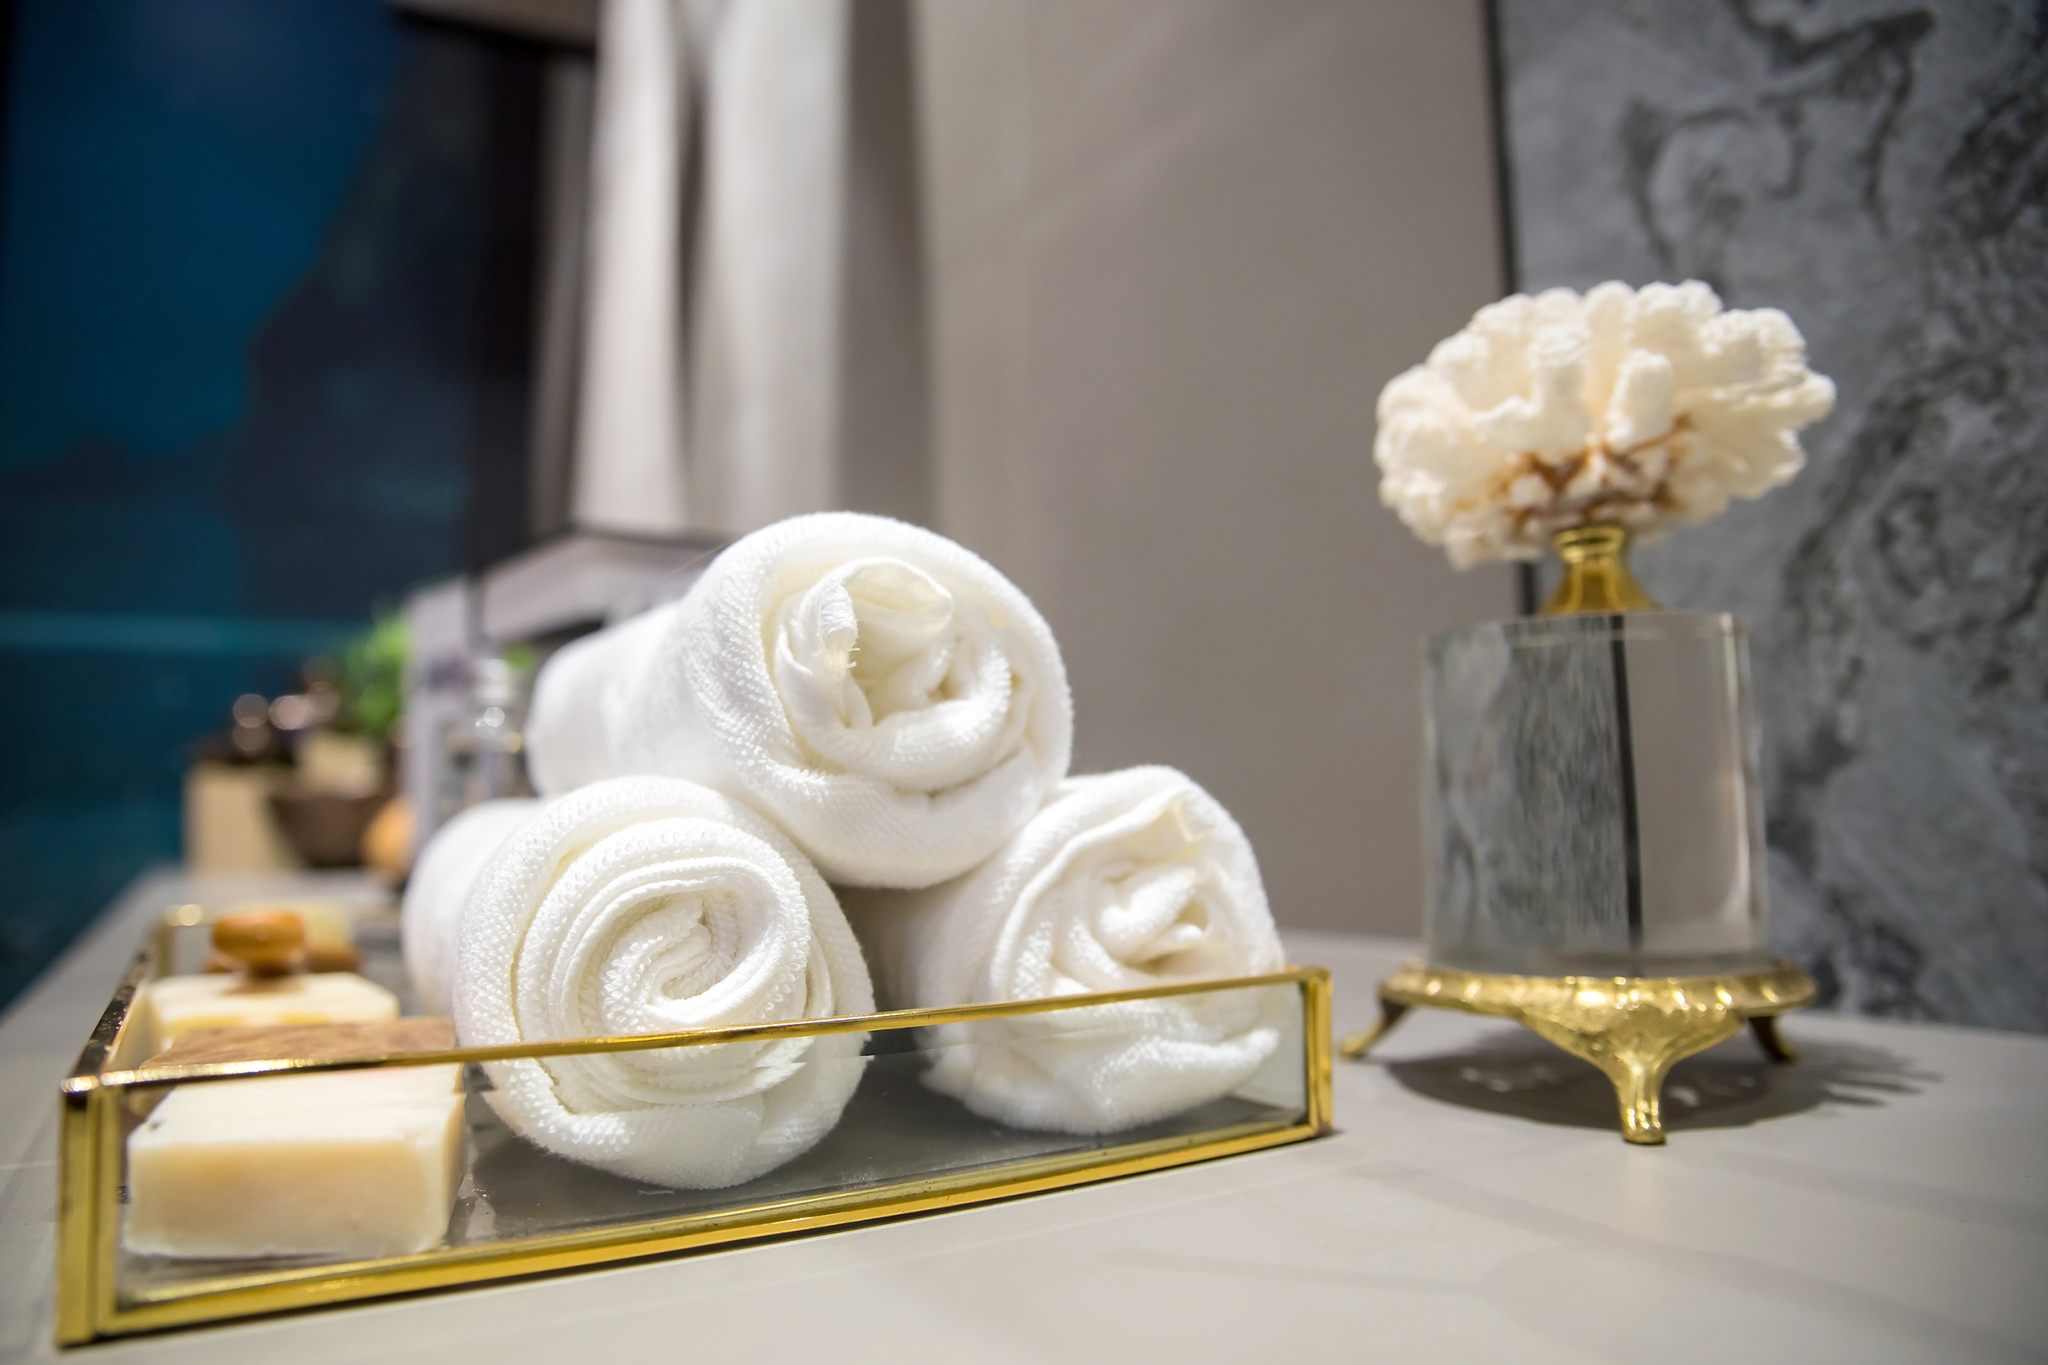 towels, soaps and flower arraigned in elegant tray